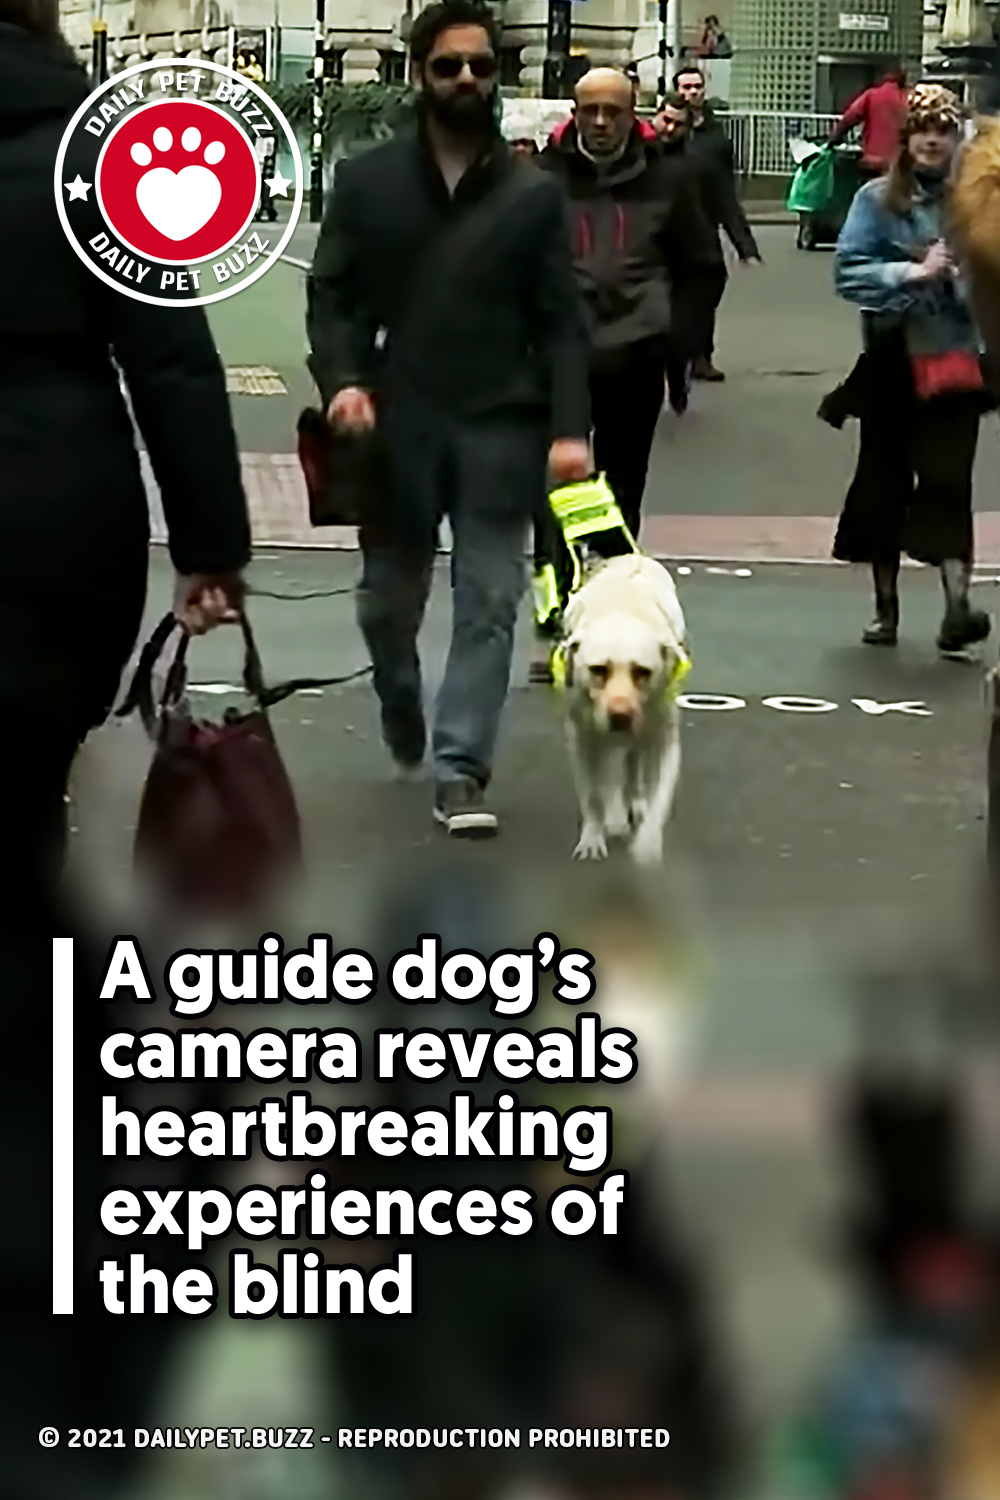 A guide dog's camera reveals heartbreaking experiences of the blind